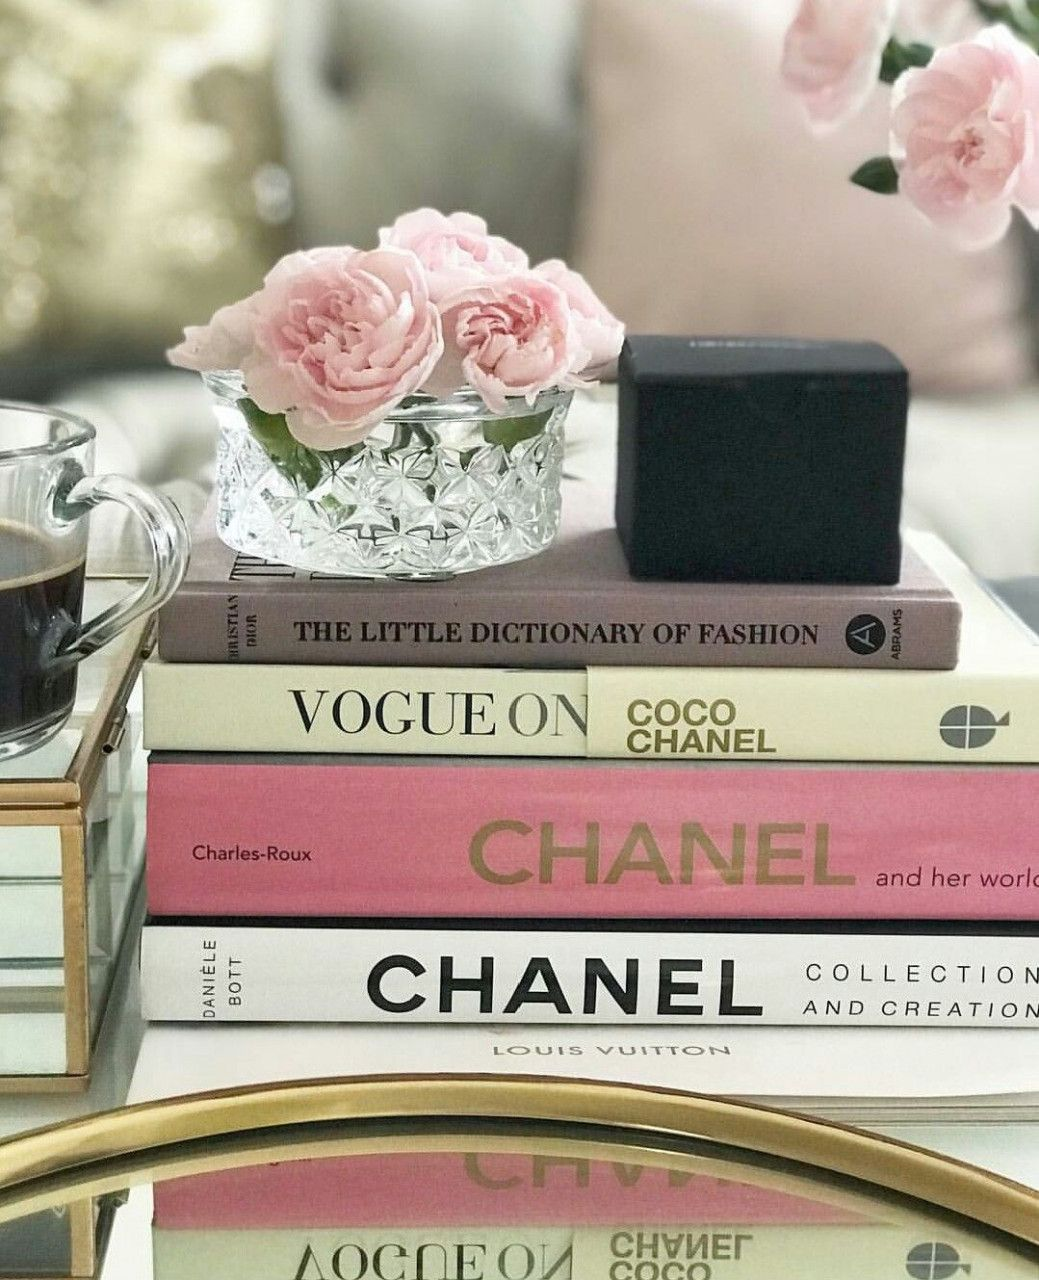 99 Awesome Pink Coffee Table Books 2020 Decorating Coffee Tables Glam Coffee Table Decor Coffee Table Books